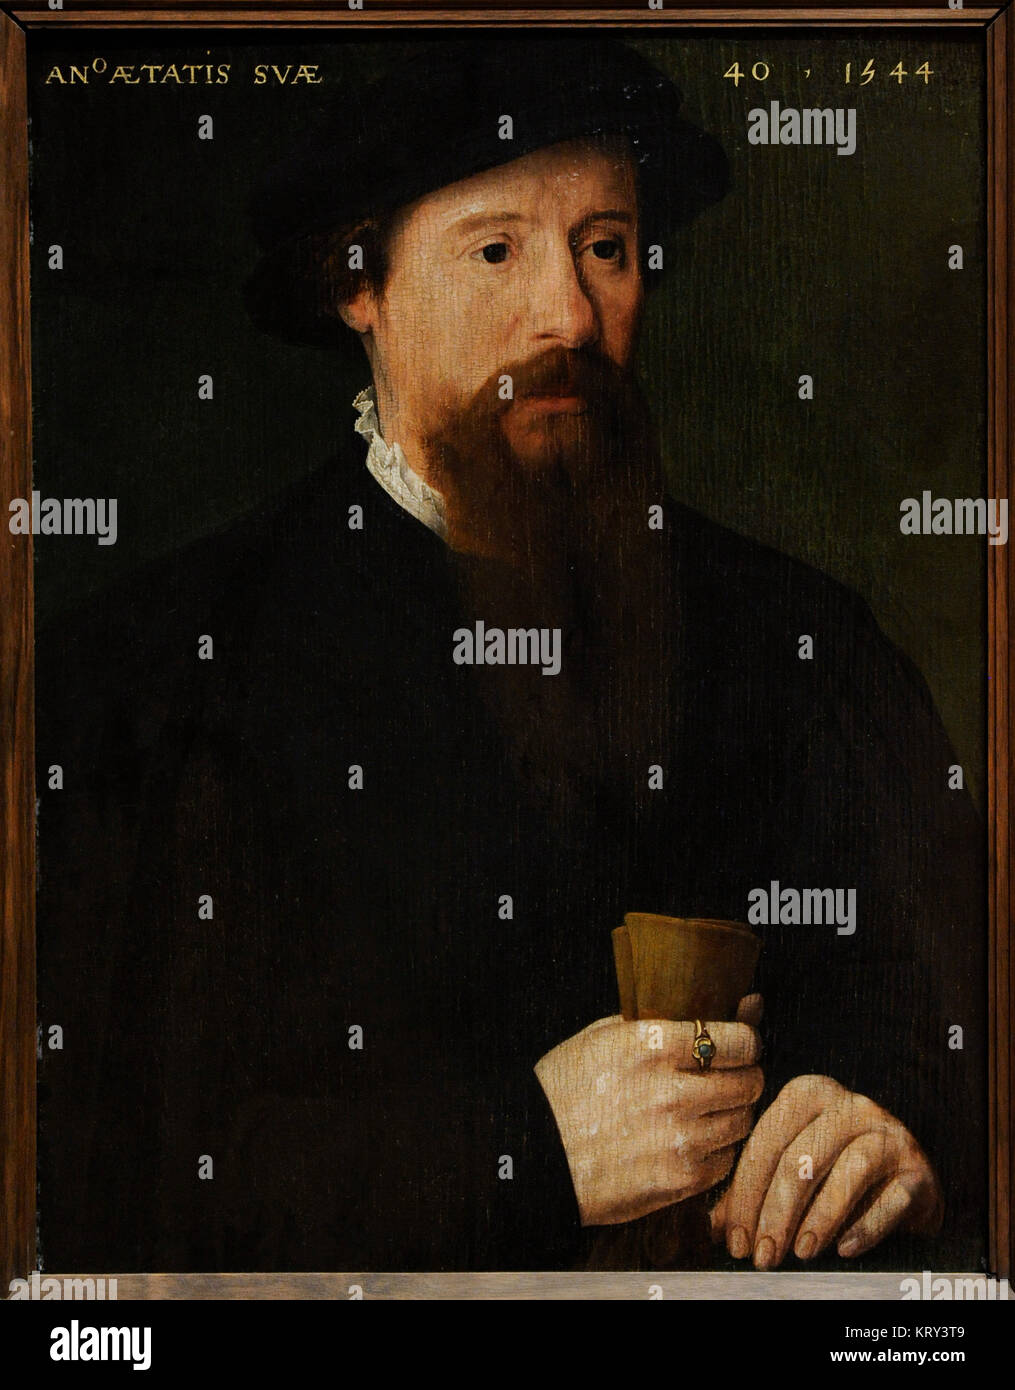 Pieter Pourbus (1523-1584). Dutch painter. Portrait of a Man, 1544. National Gallery. Oslo. Norway. - Stock Image